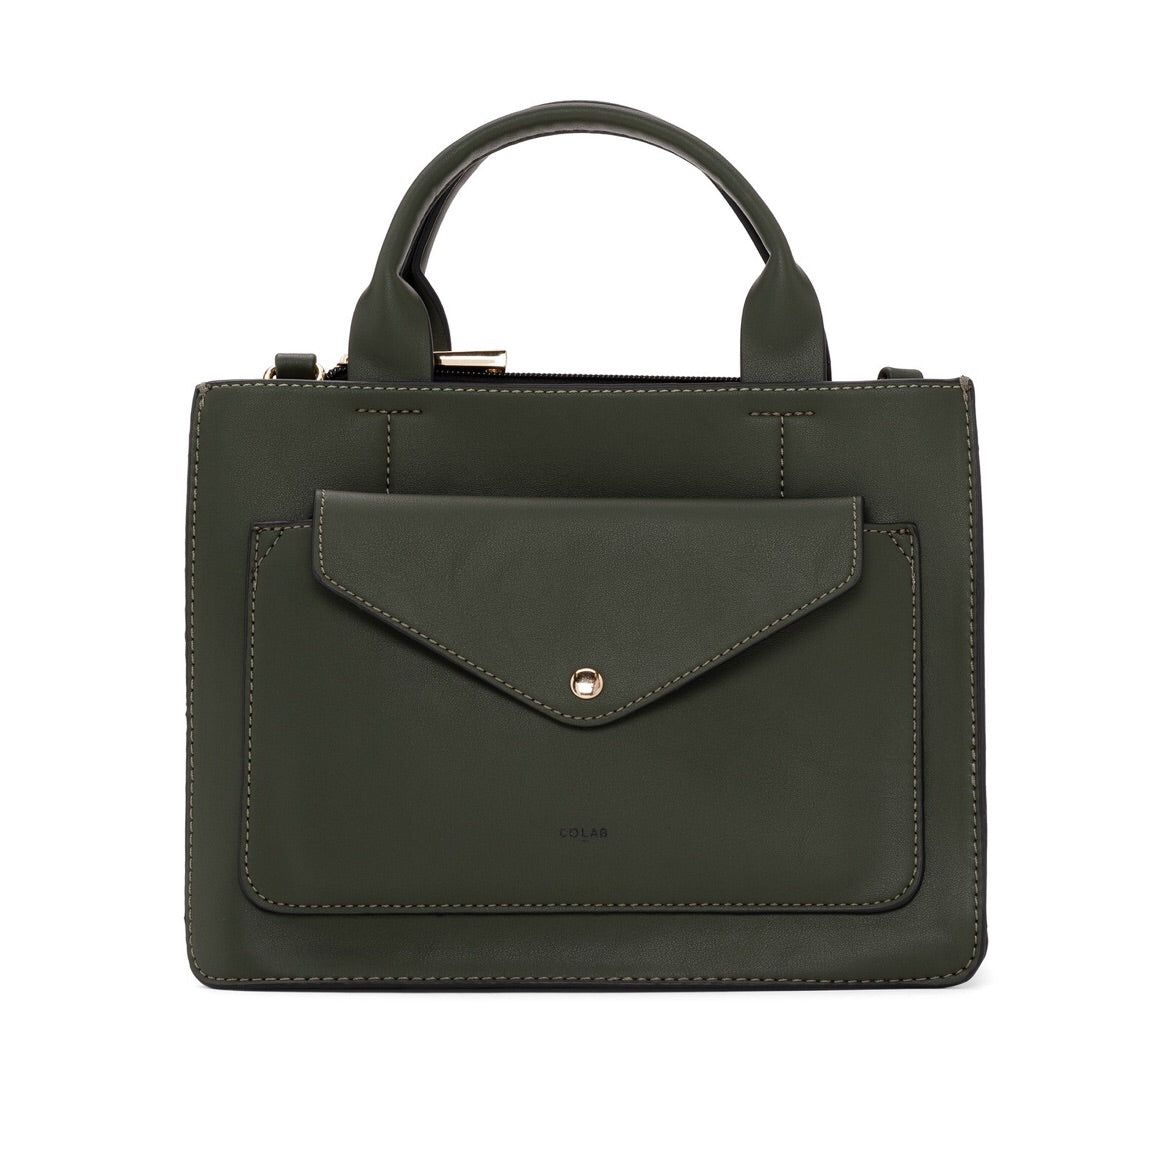 TAILORED MINI TOTE CROSSBODY - FOREST